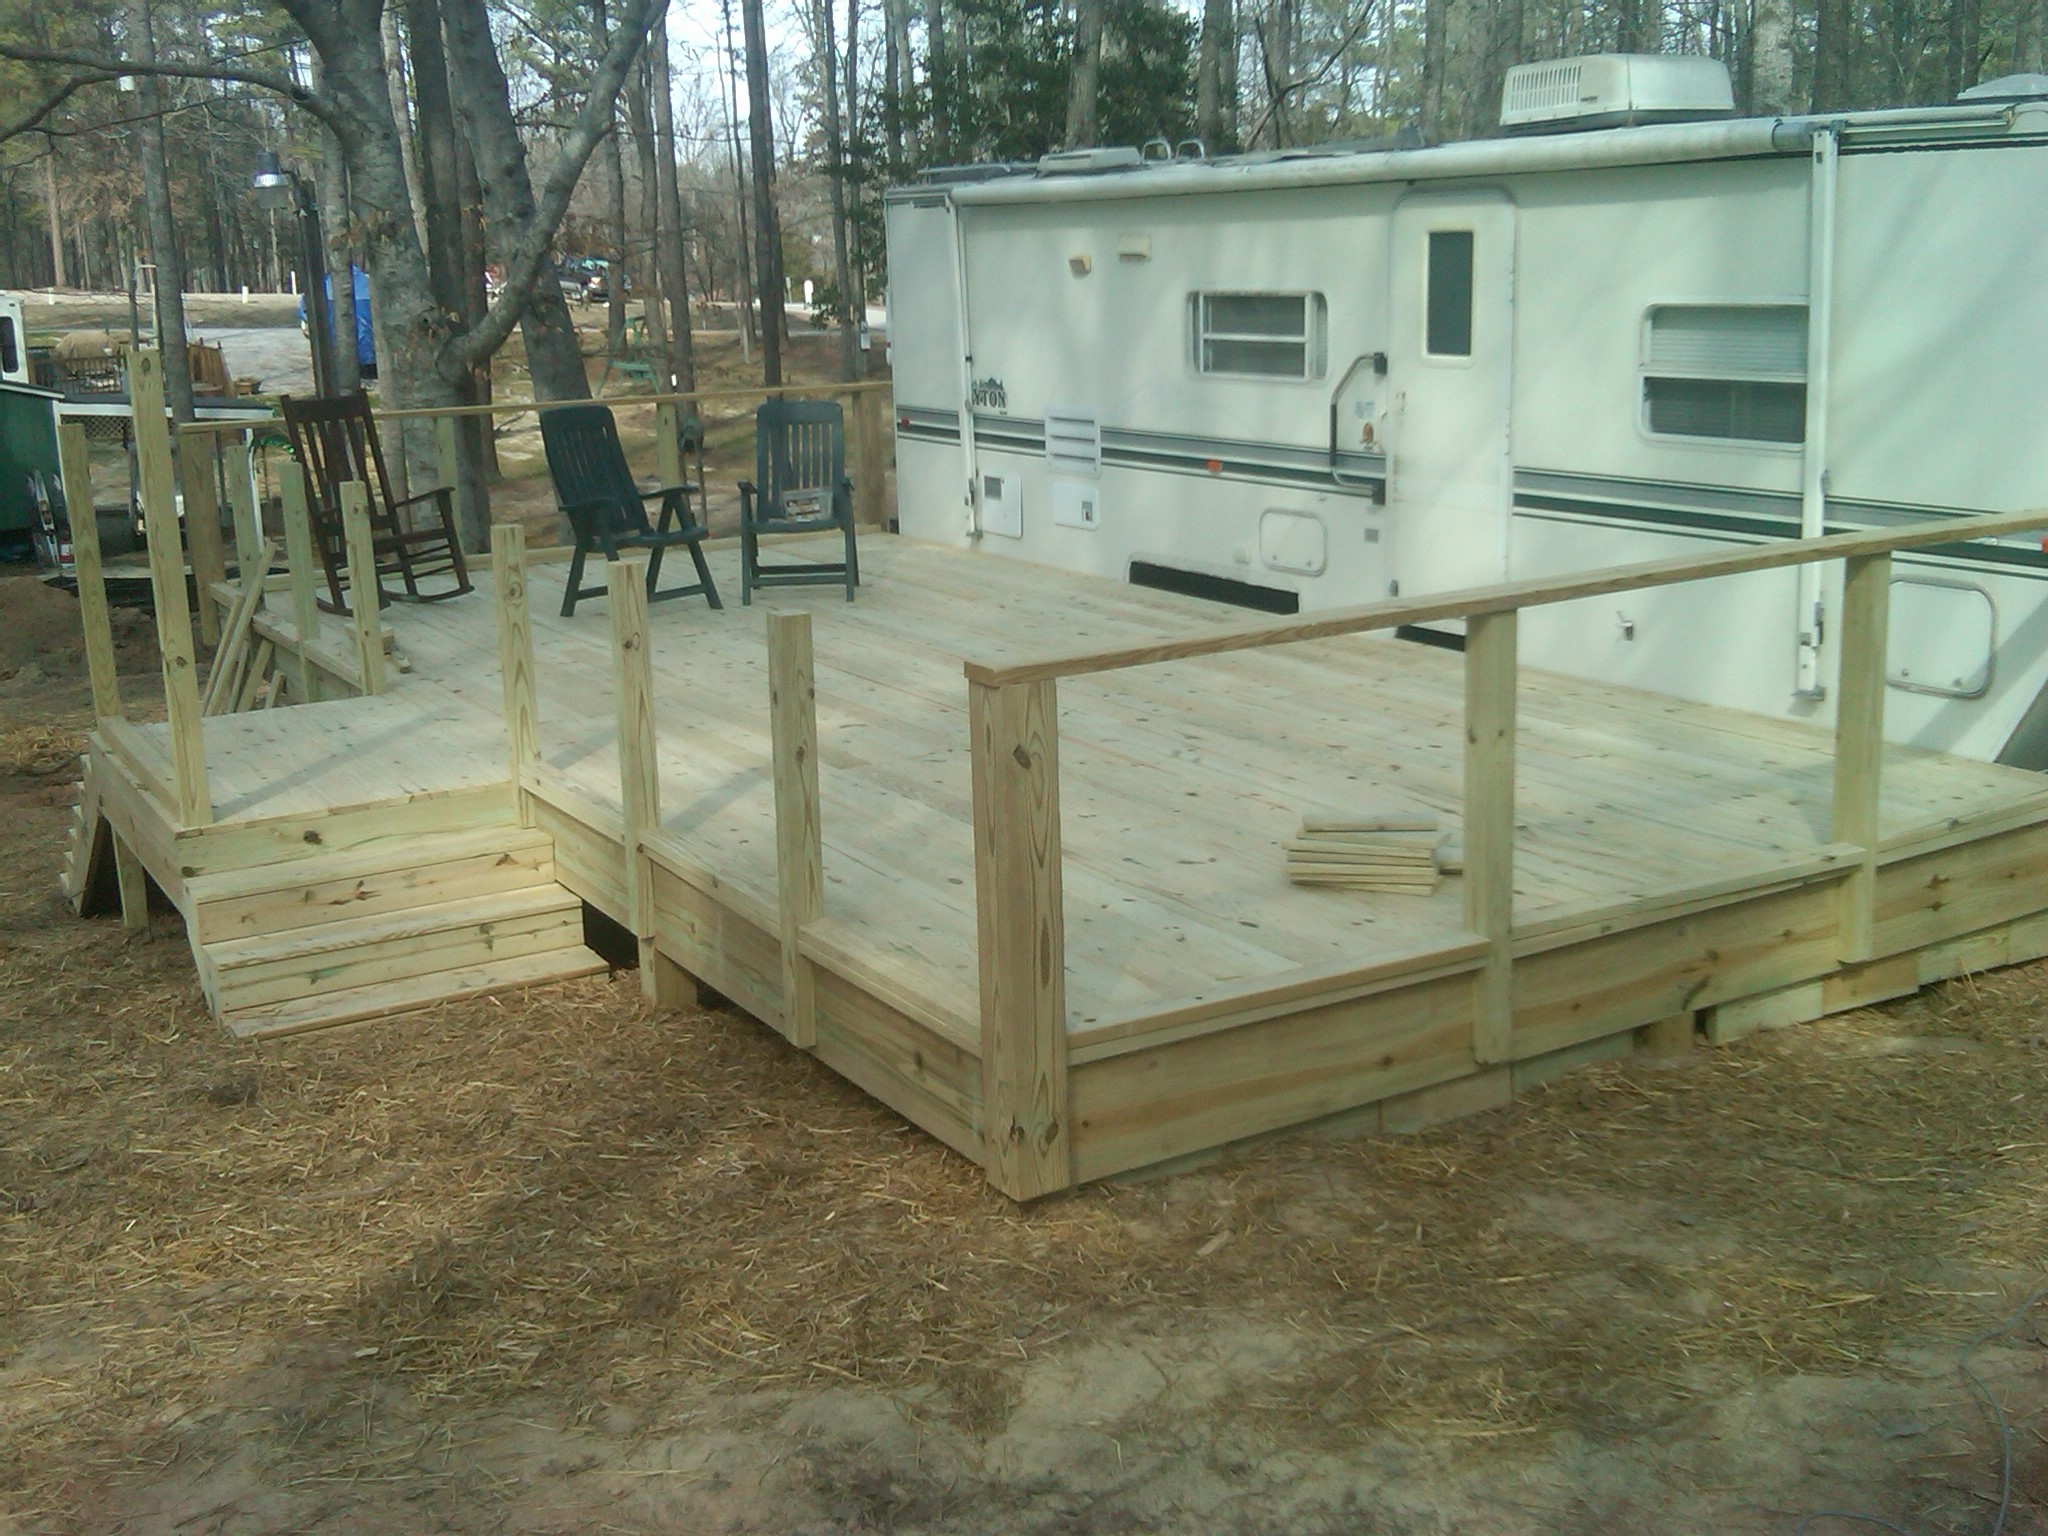 Creative CamperDeckIdeas New Deck For Camper Cooley Construction Corp